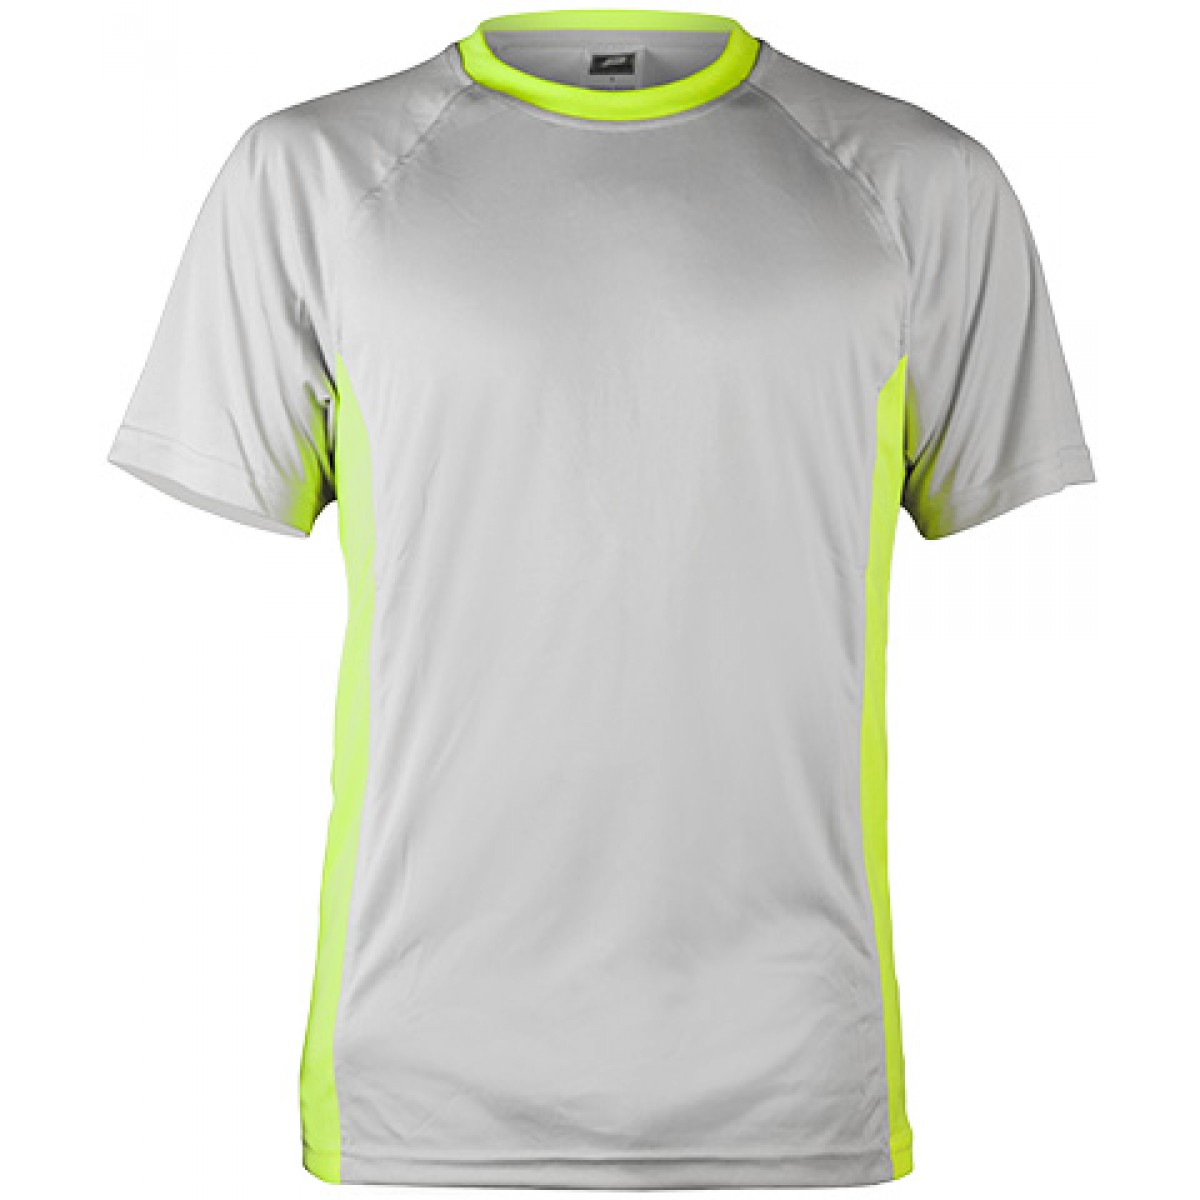 Short Sleeve Performance Fit with Flat-back Mesh Side Insert-Gray/Green-M